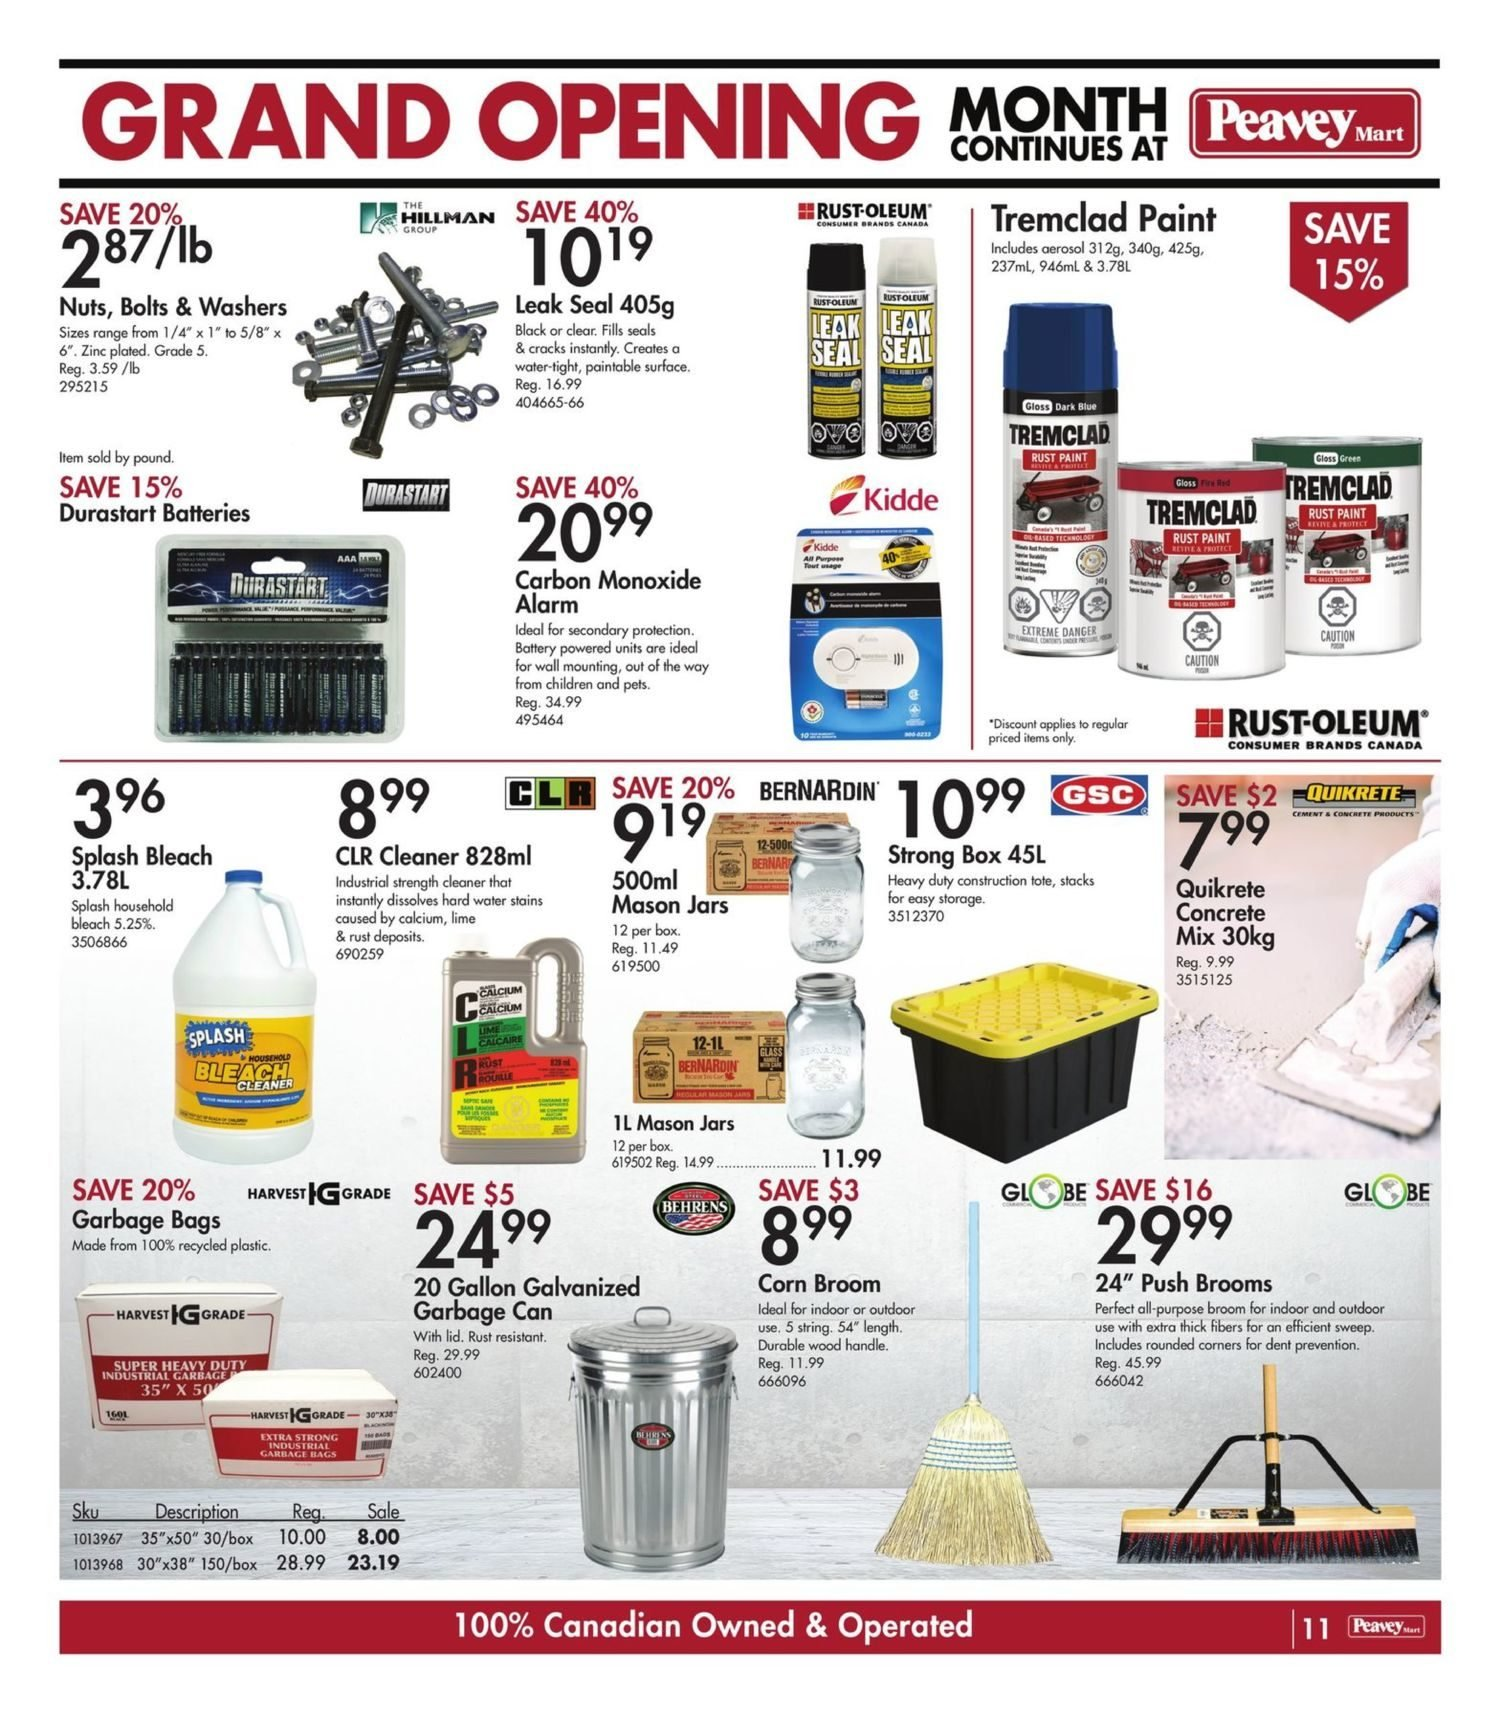 Peavey Mart - Weekly Flyer Specials - National Grand Opening Celebration - Page 14